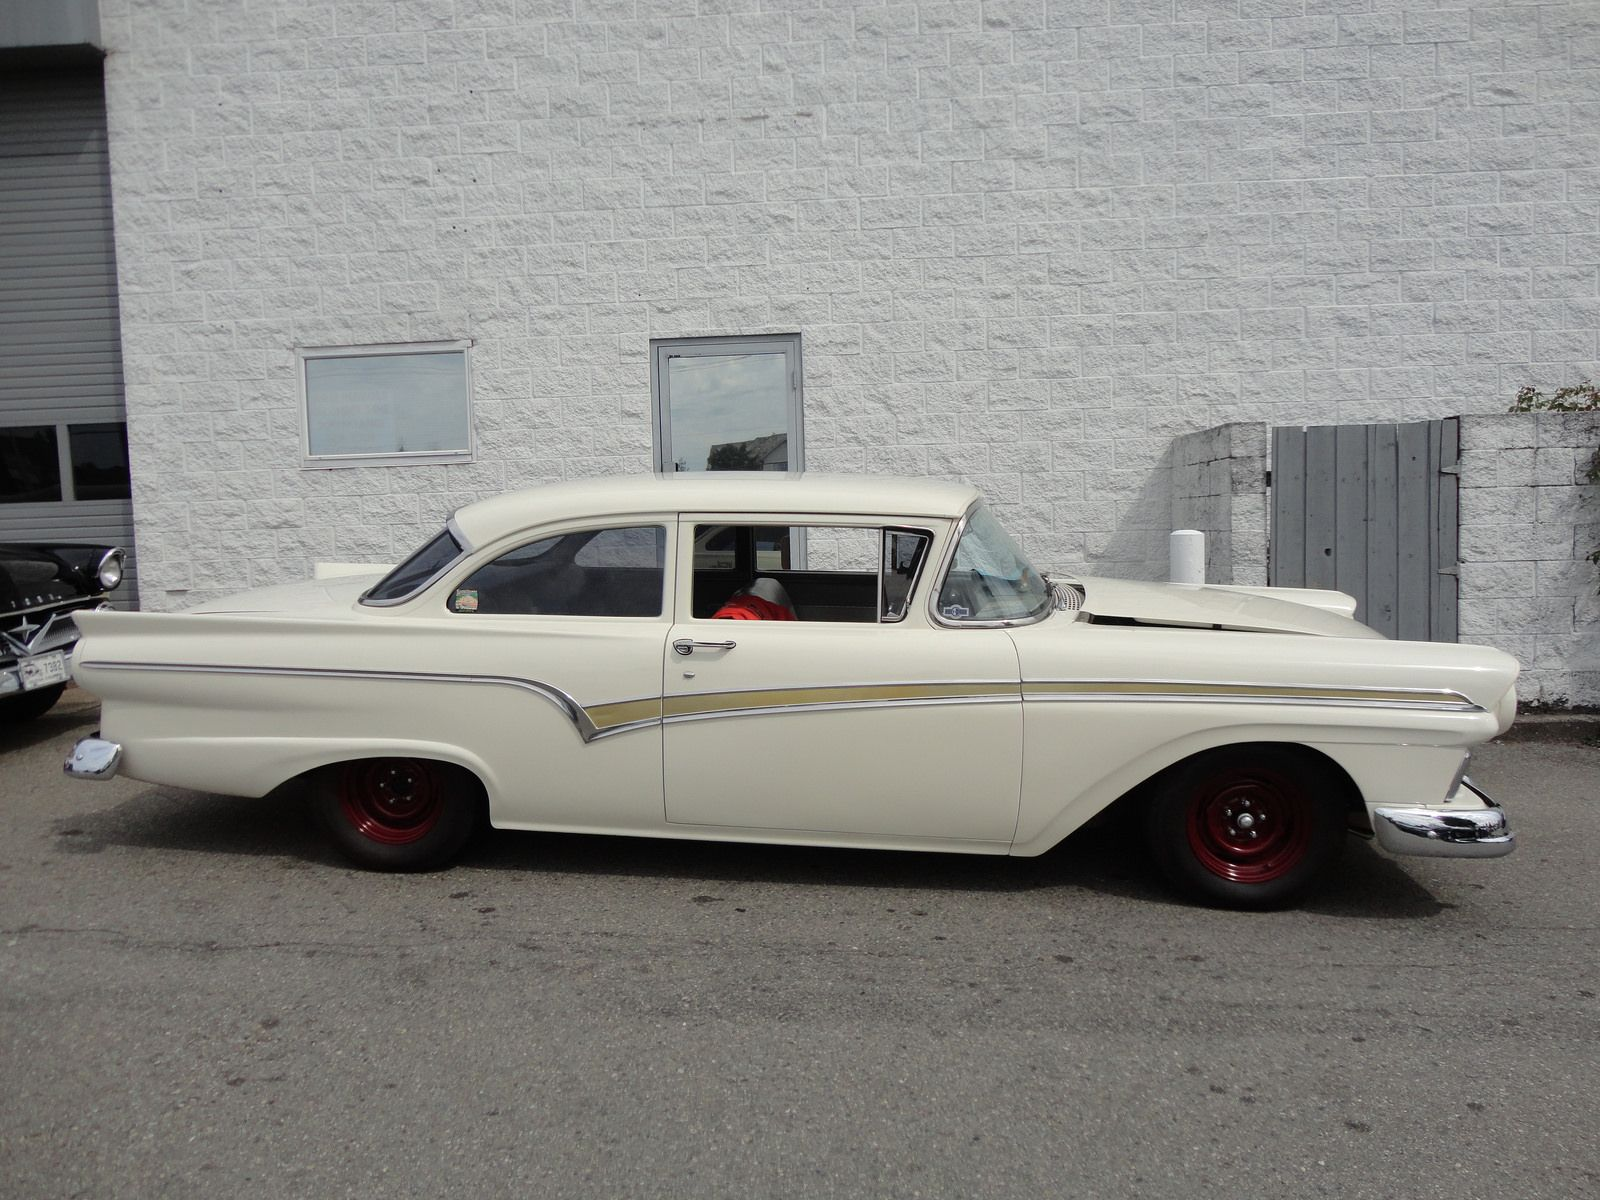 Customs 1957 ford ranchero mild custom facelift page 24 the h a m b sensible rides pinterest ford cars and antique trucks